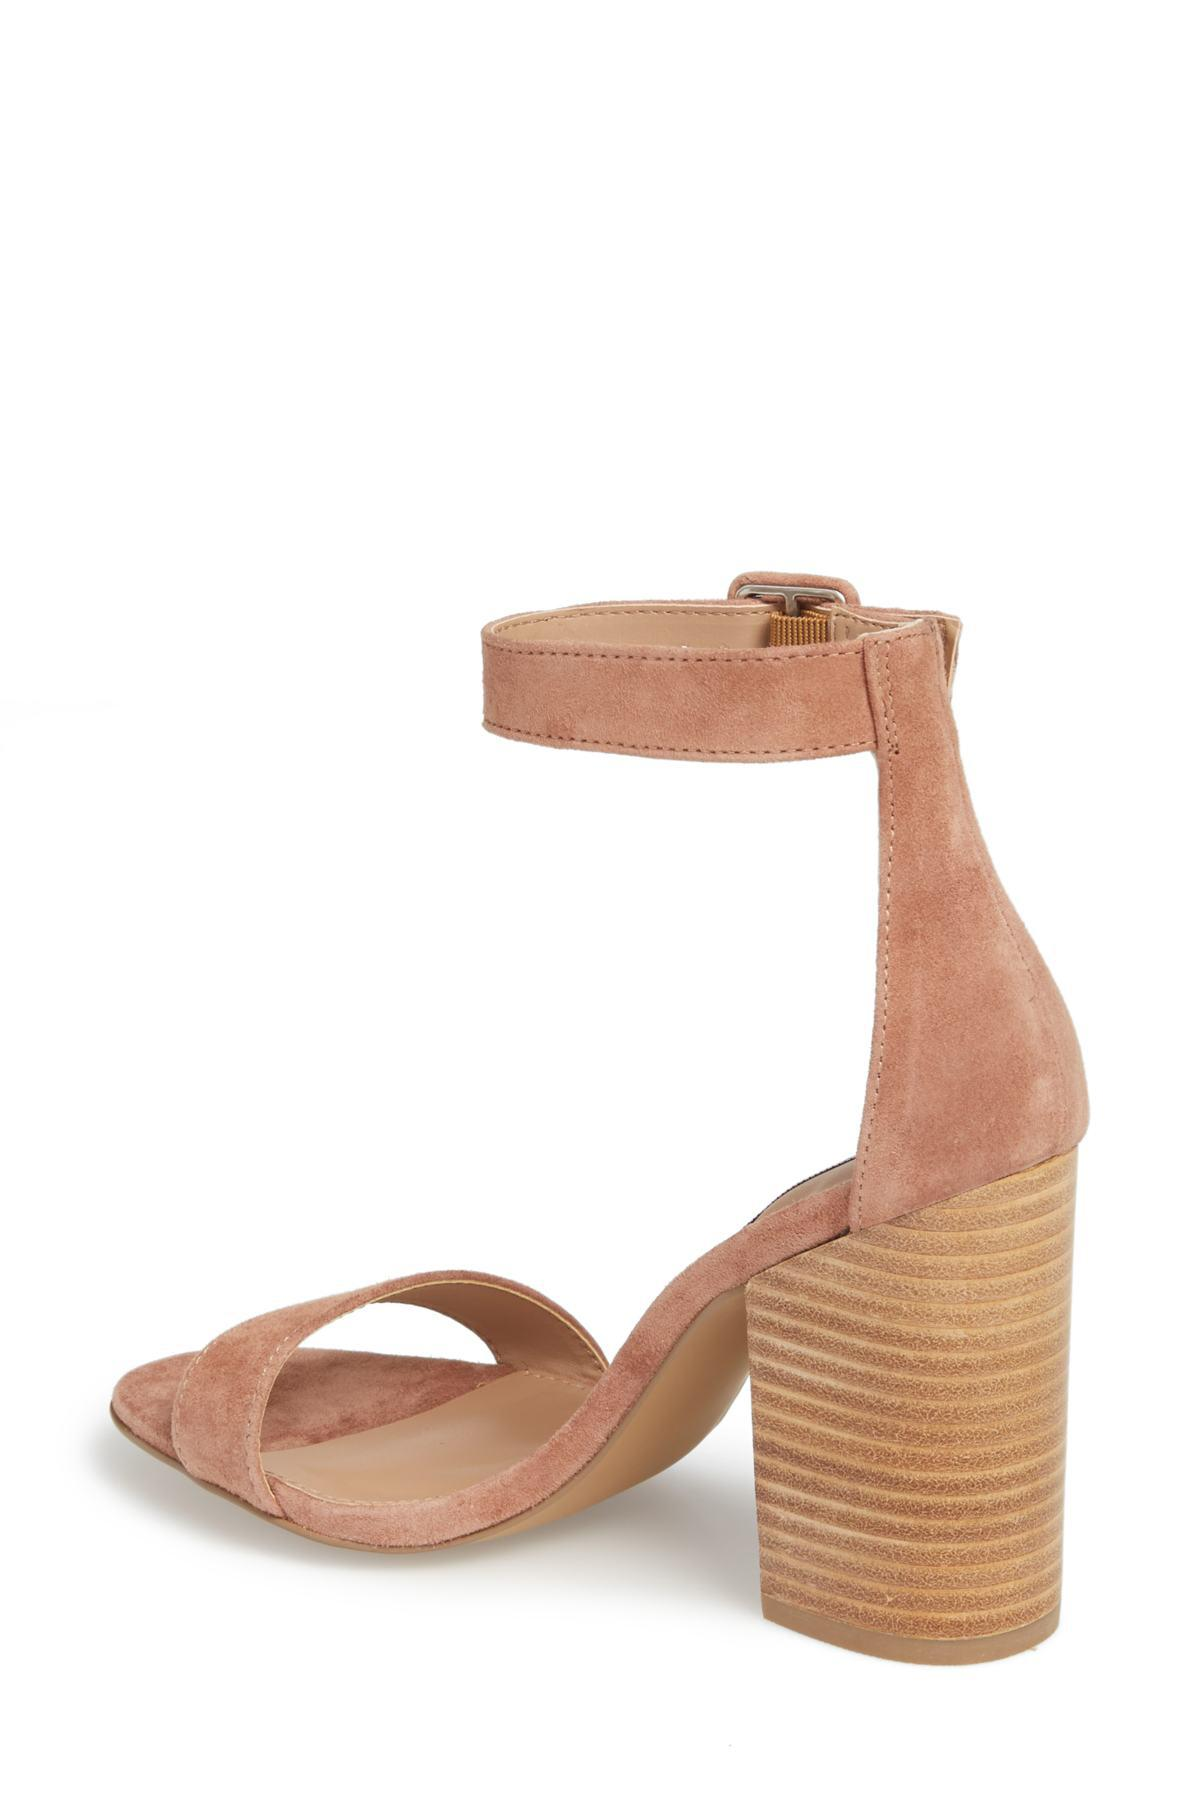 5a66de942c8d Lyst - Steve Madden Frieda Ankle Strap Sandal (women) in Brown